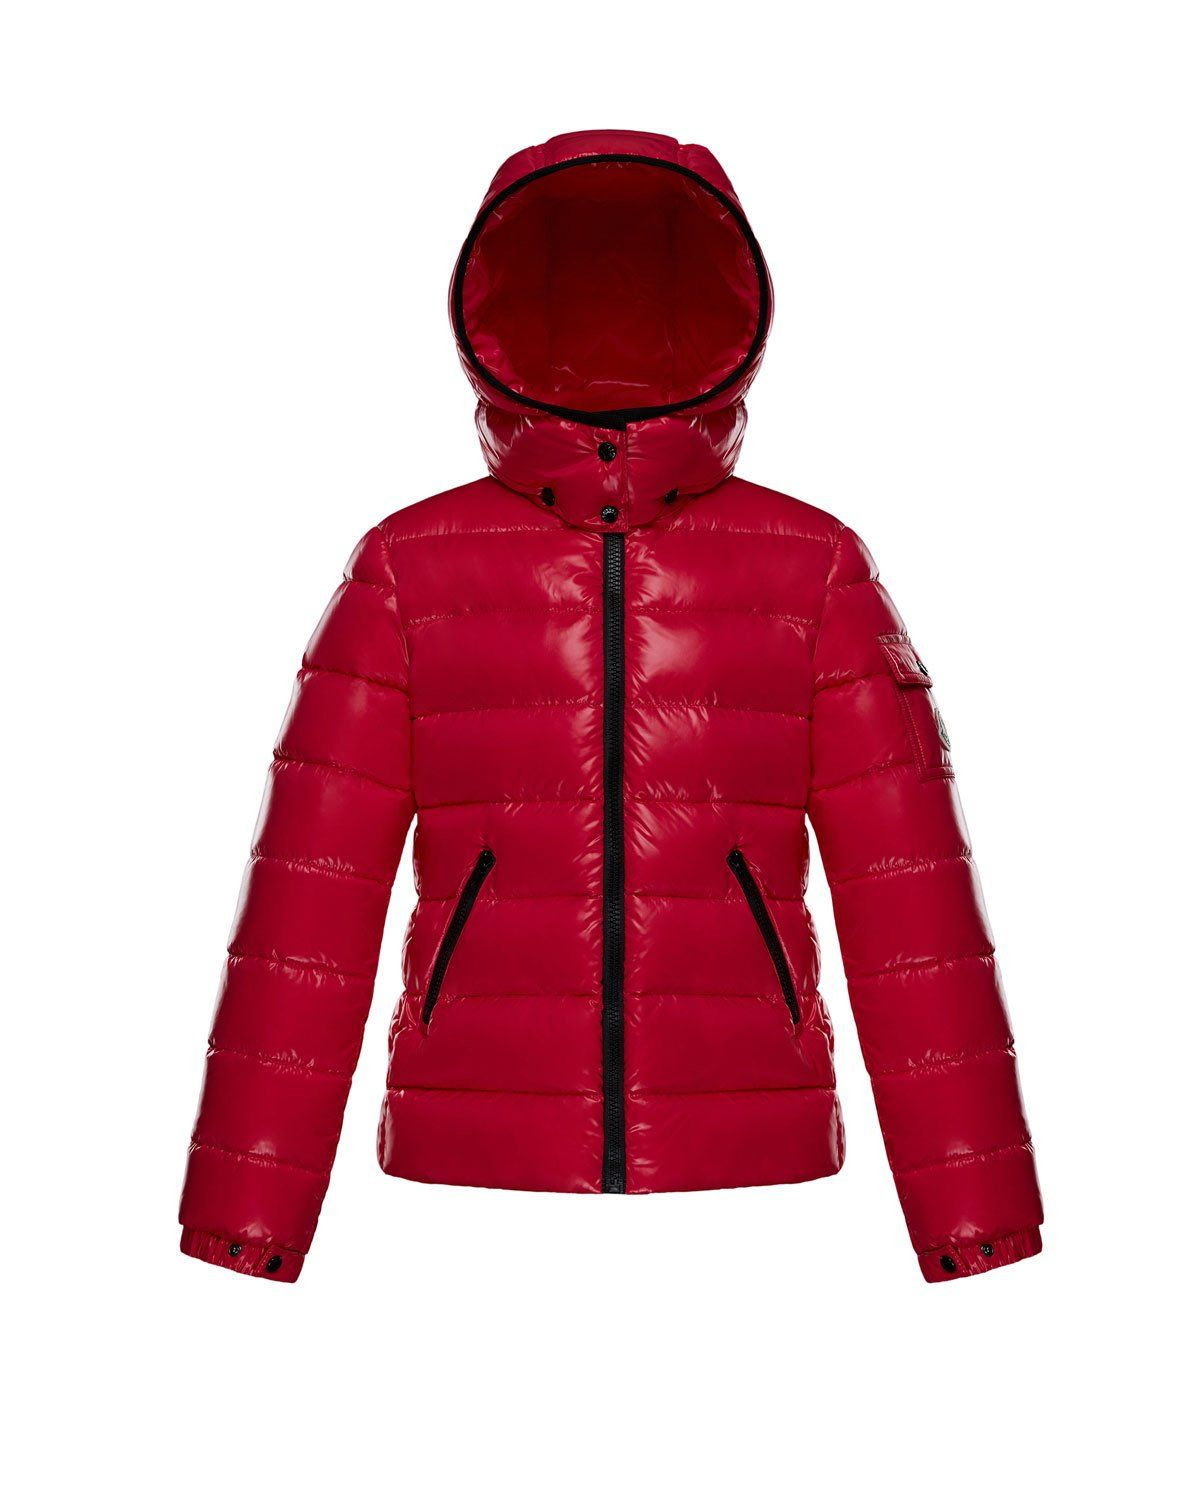 40dbb6848 Bady Fitted Puffer Jacket Fuchsia Size 8-14 | Products | Puffer ...